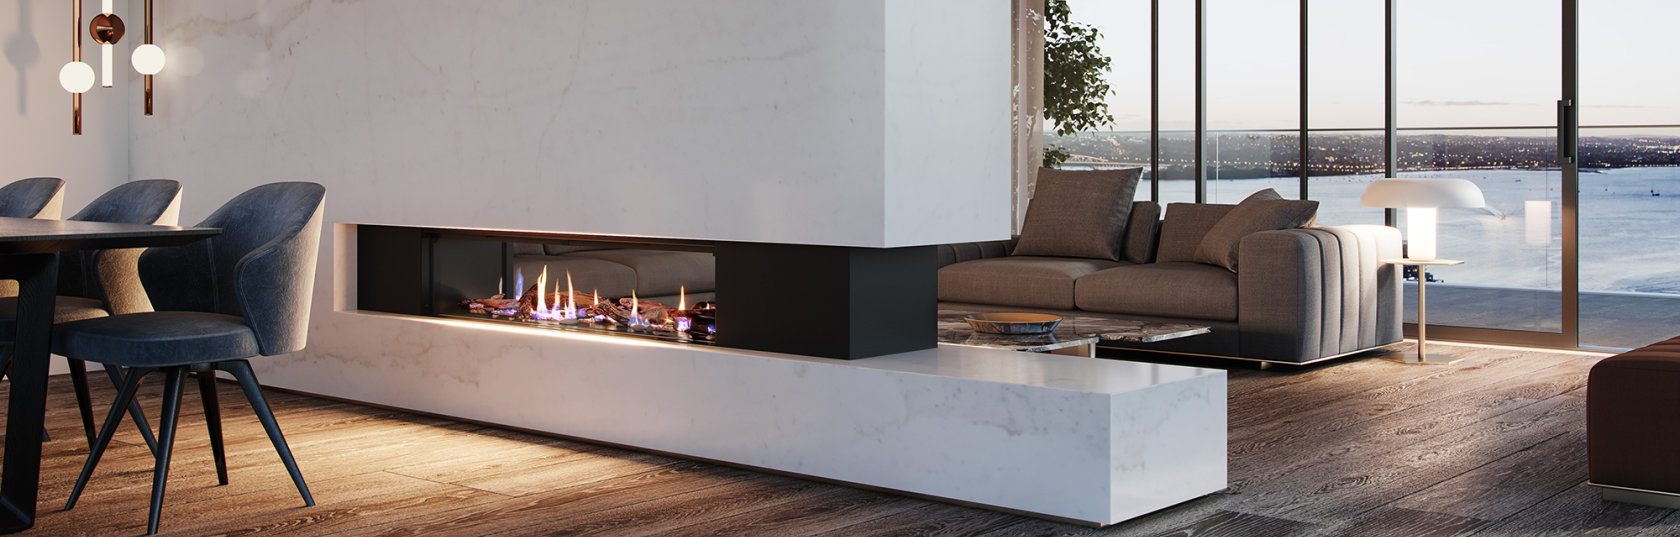 Realism and nature combine in a new gas fireplace range